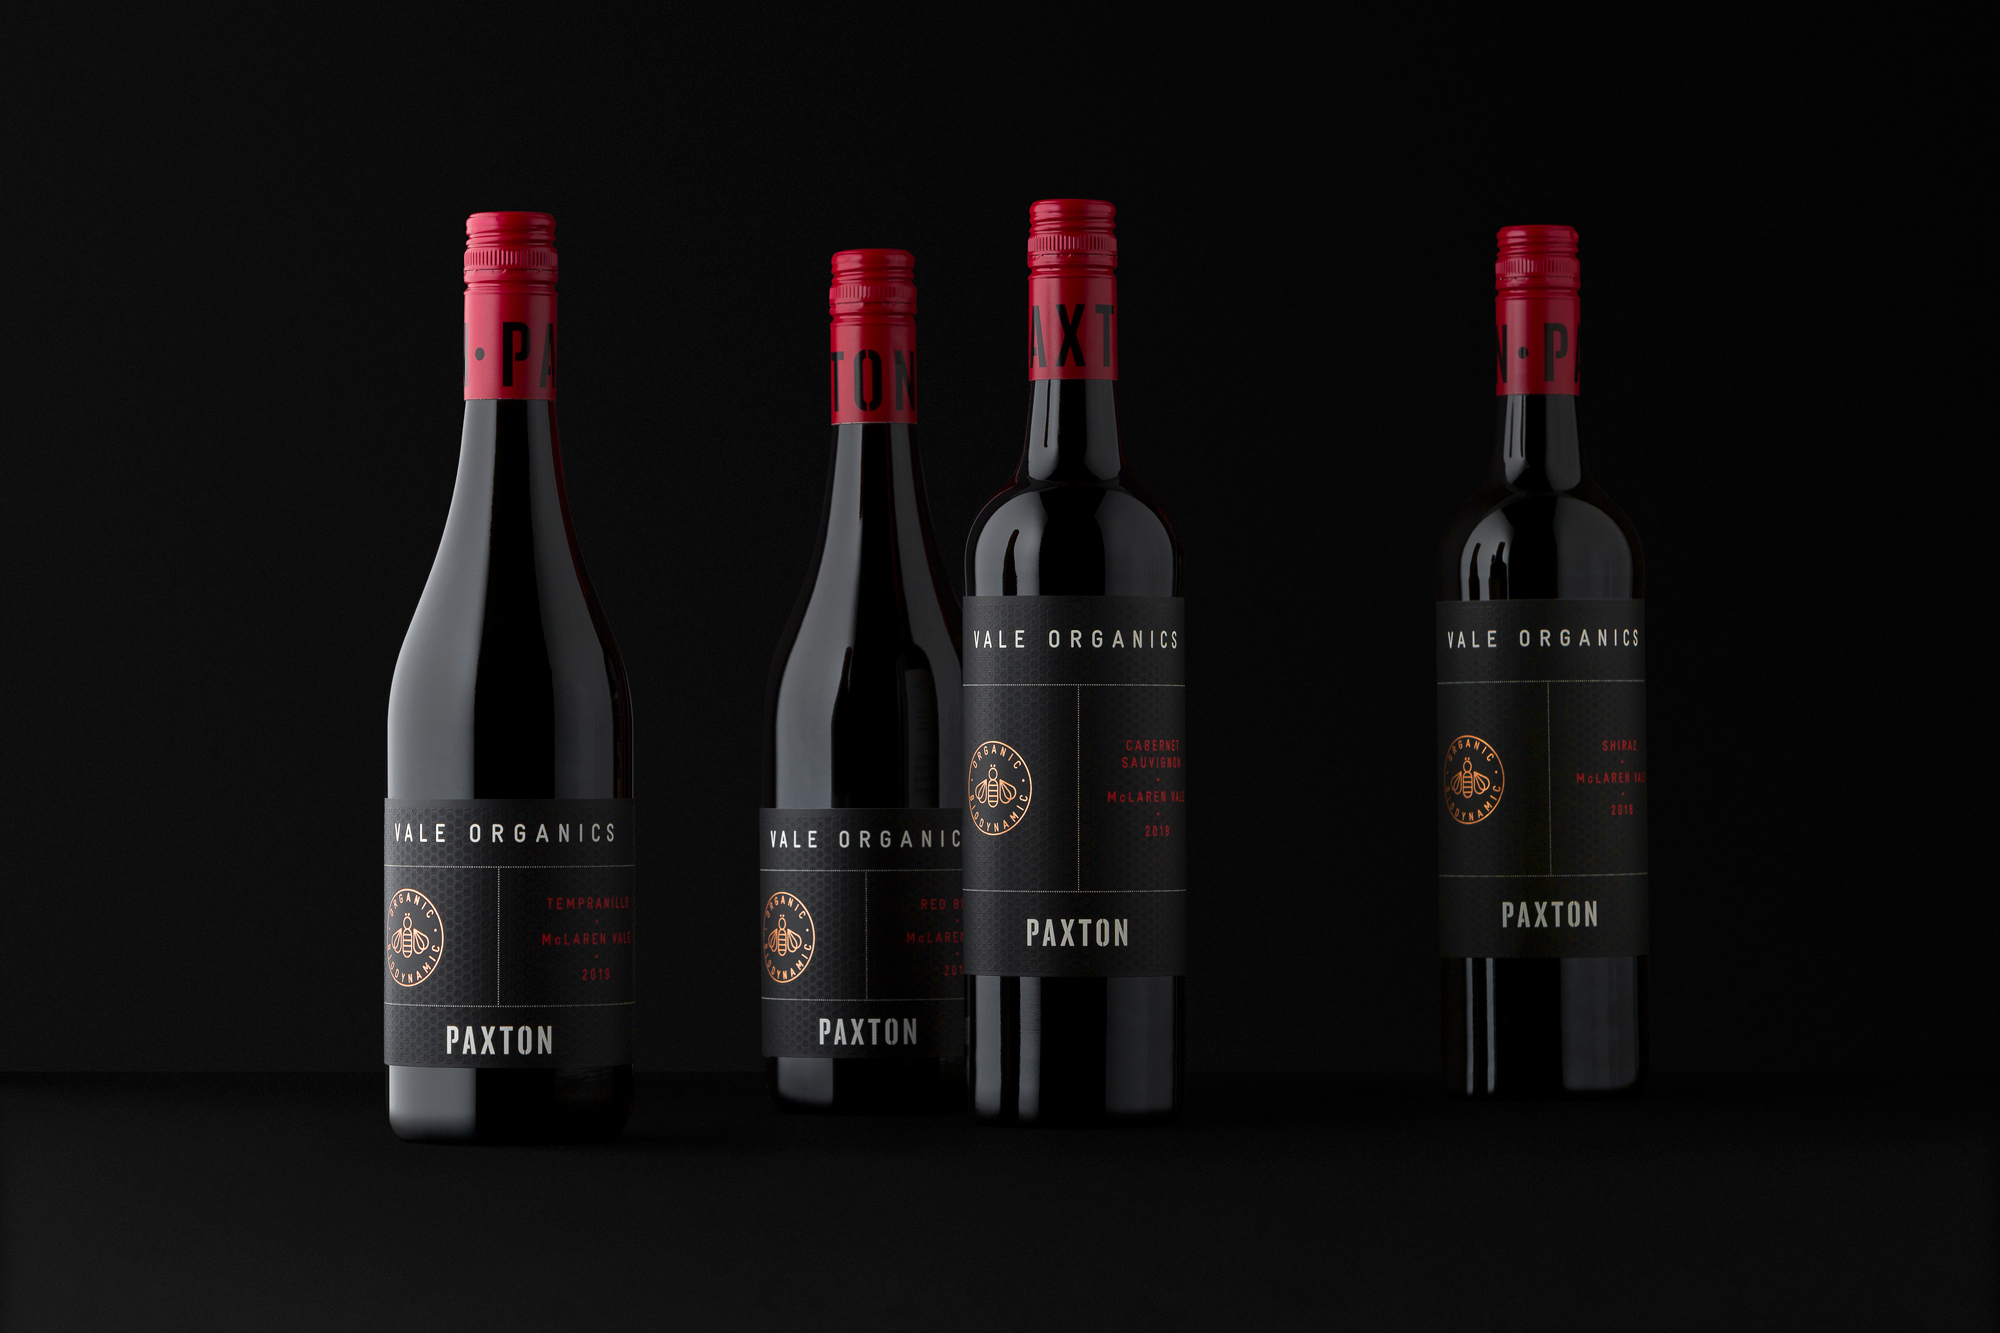 Paxton Vale Organics Wine Packaging Designed by David Byerlee Design